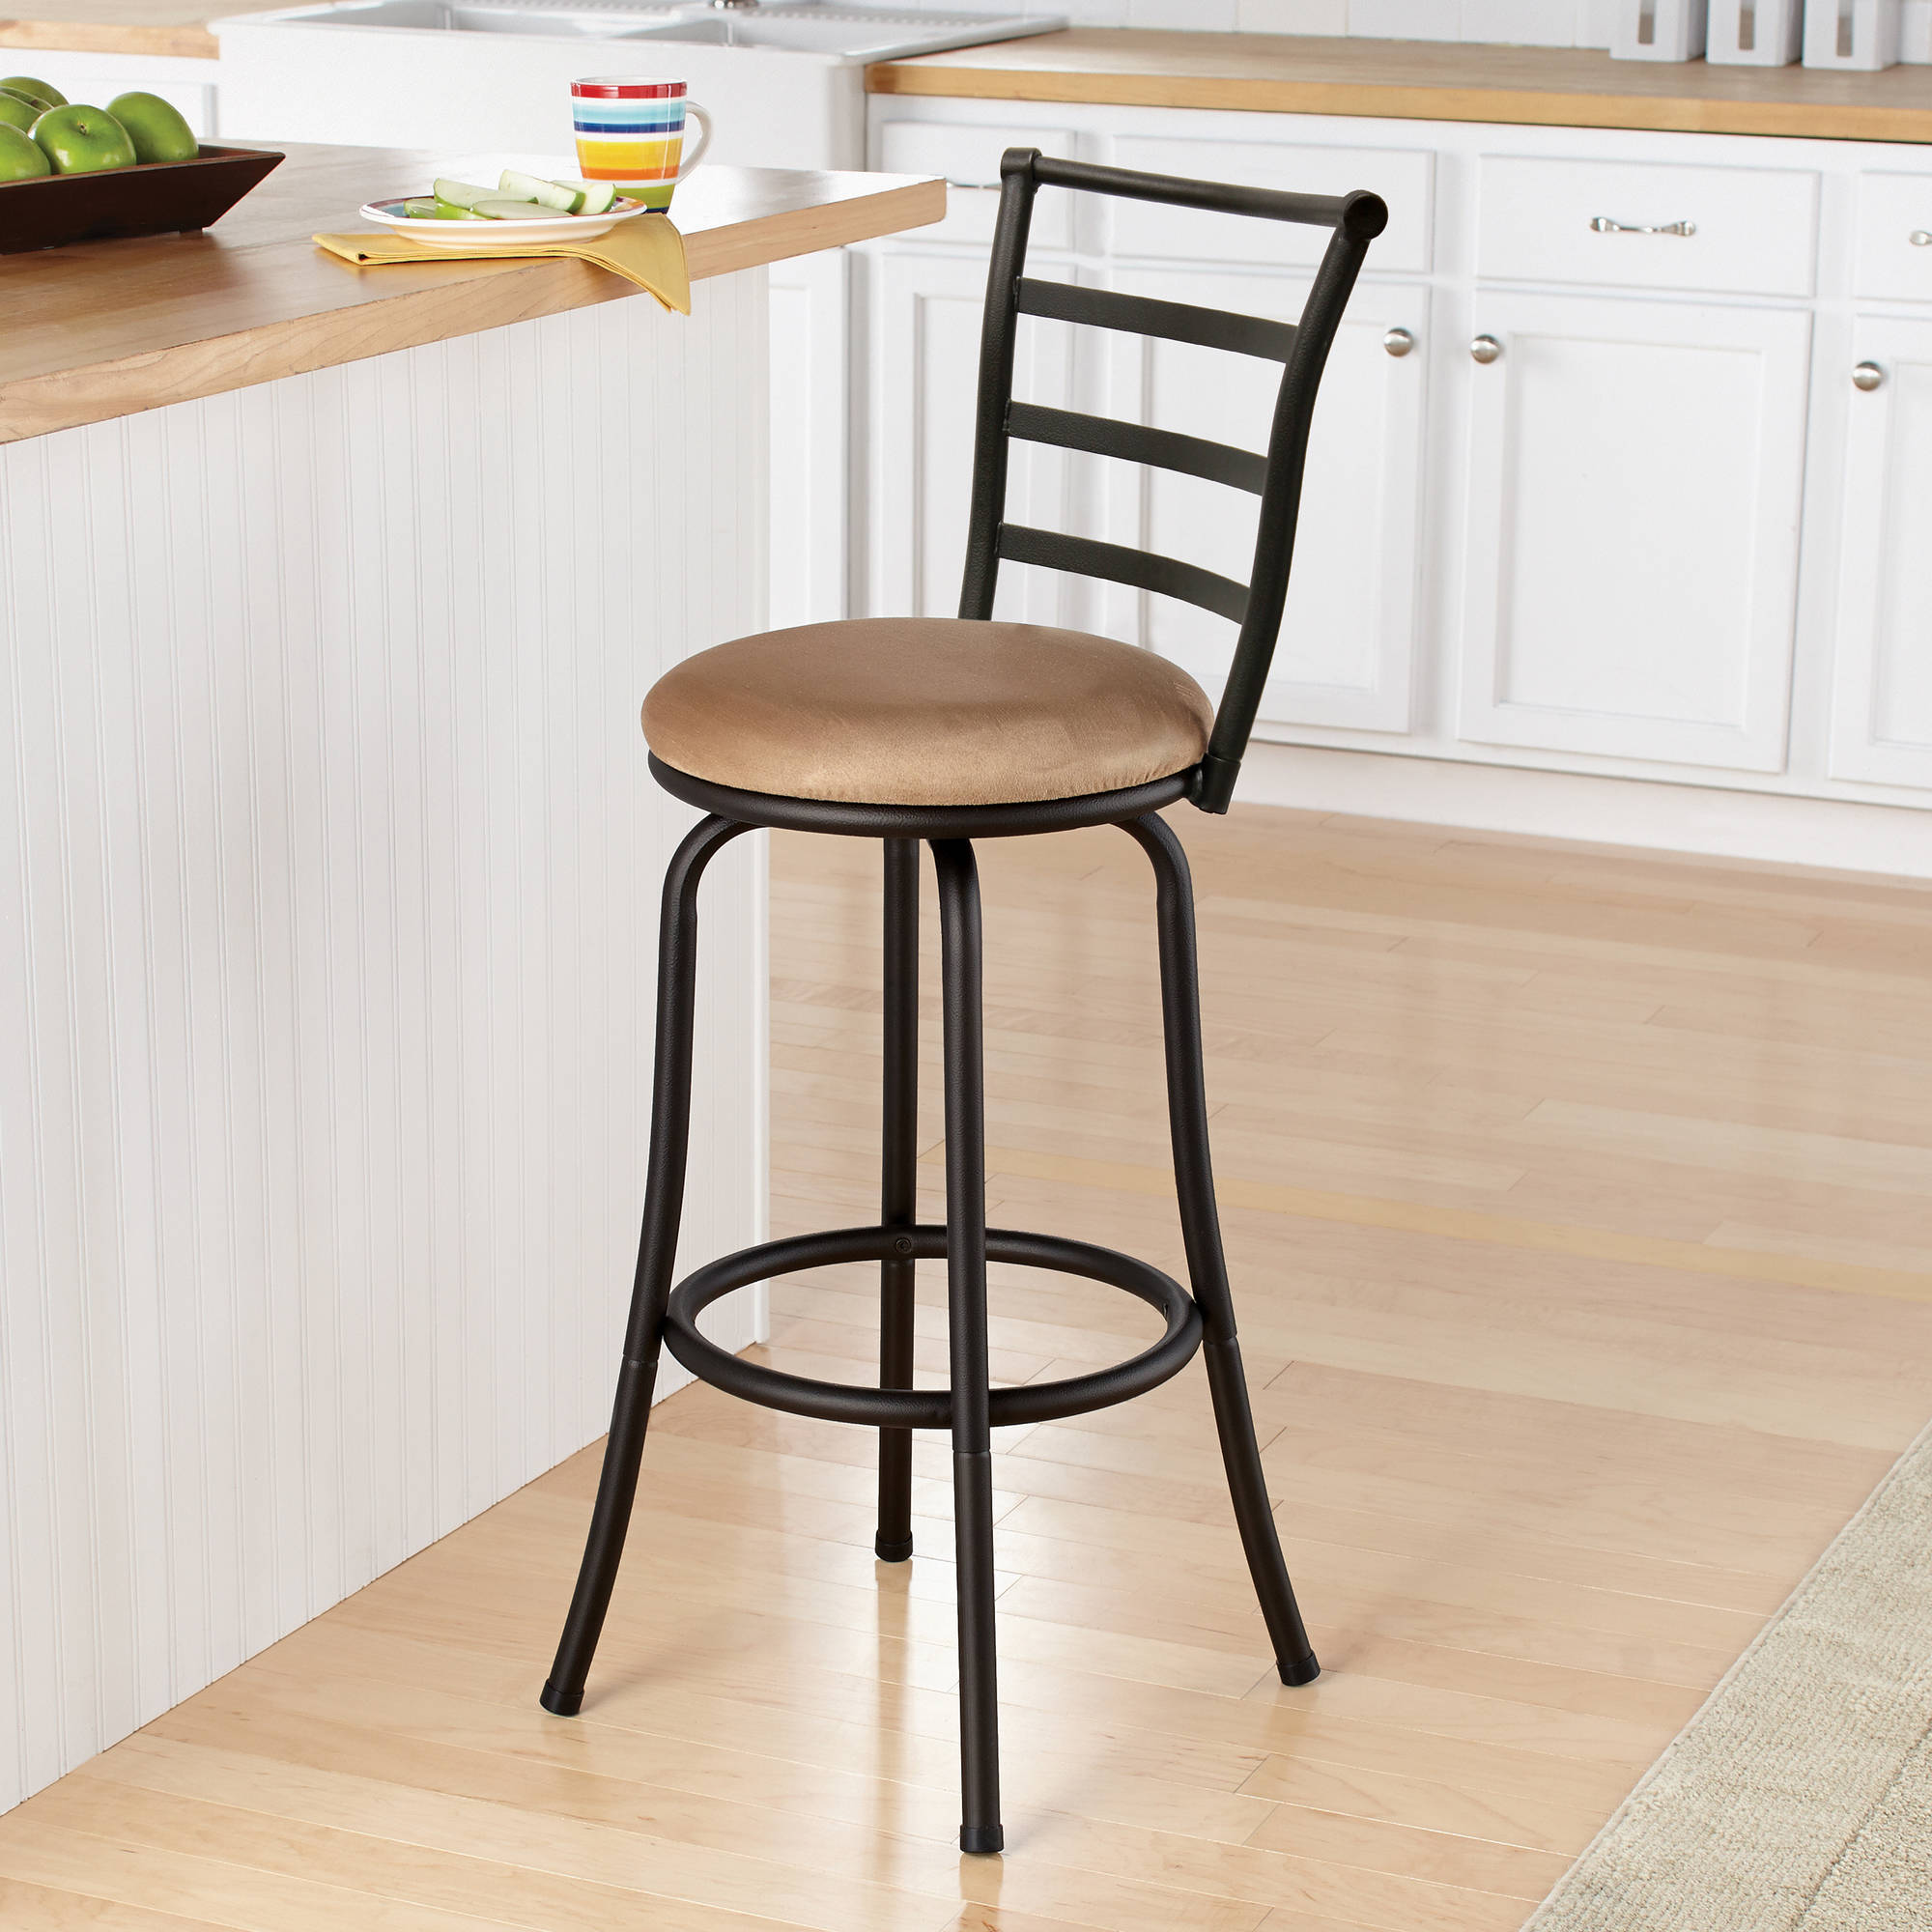 "Mainstays 29"" Ladder Back Black Barstool, Multiple Colors"